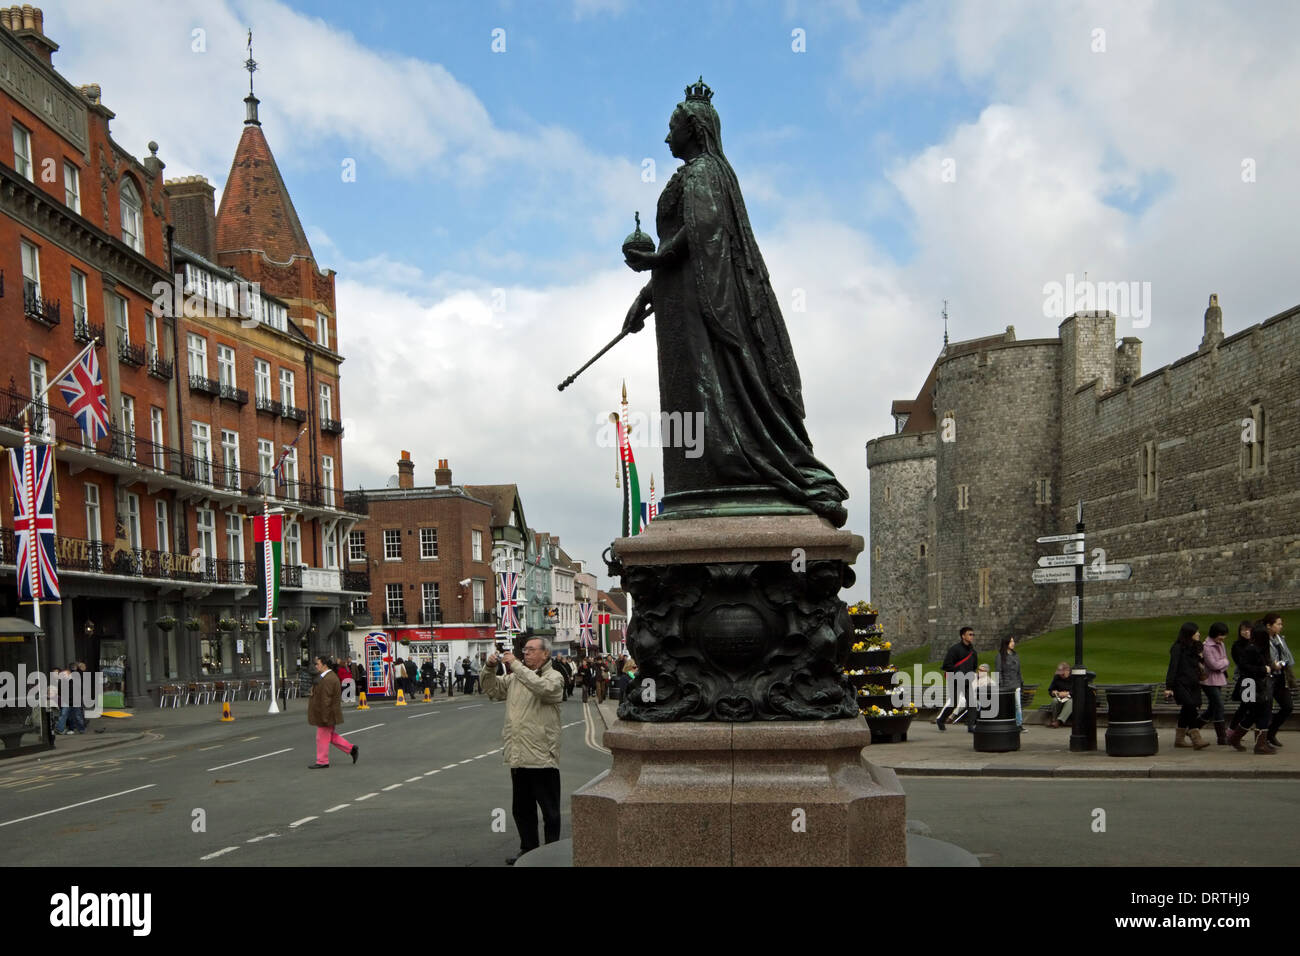 Statue of Queen Victoria opposite Windsor Castle, a royal residence, Berkshire, England, Great Britain. - Stock Image